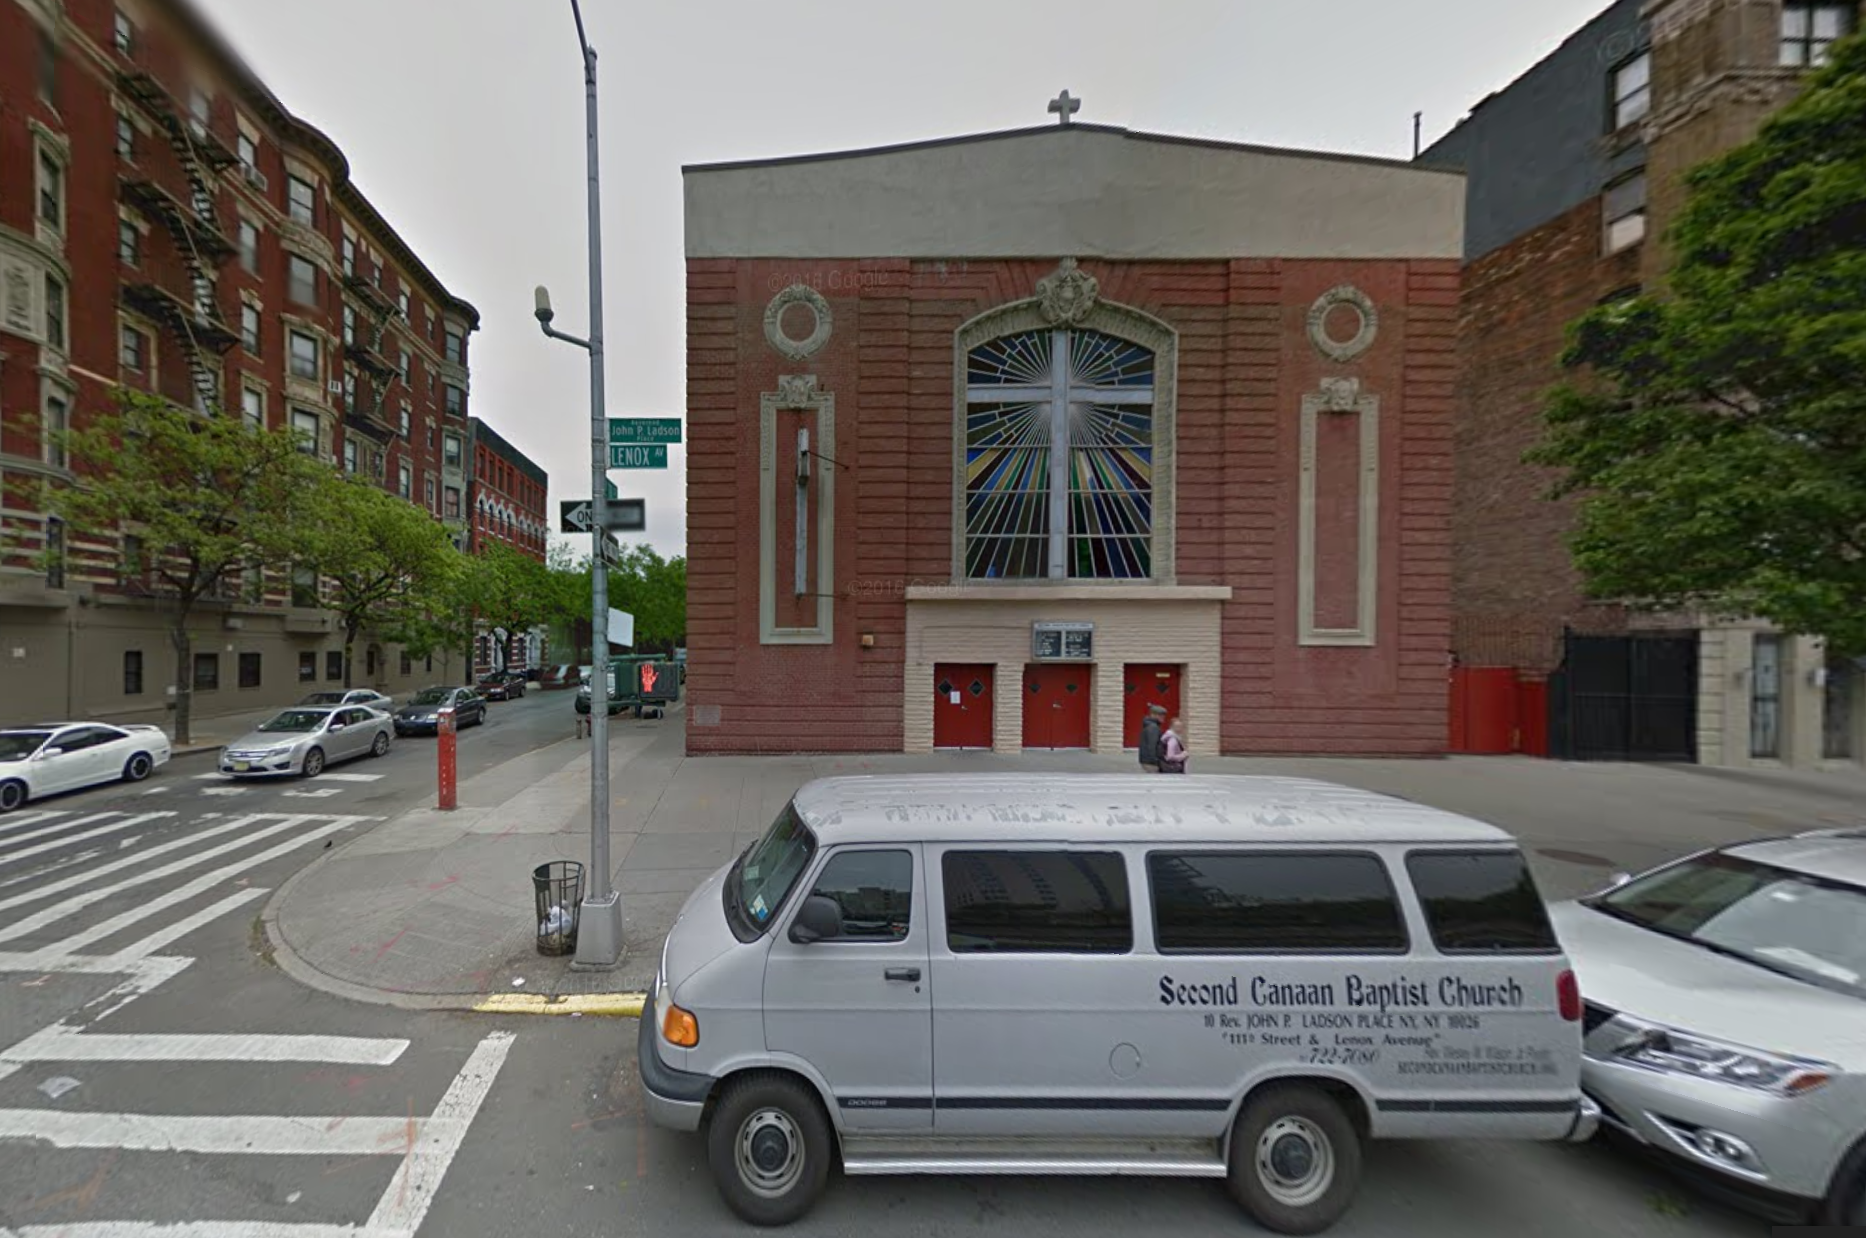 10 Lenox Avenue. image via Google Maps